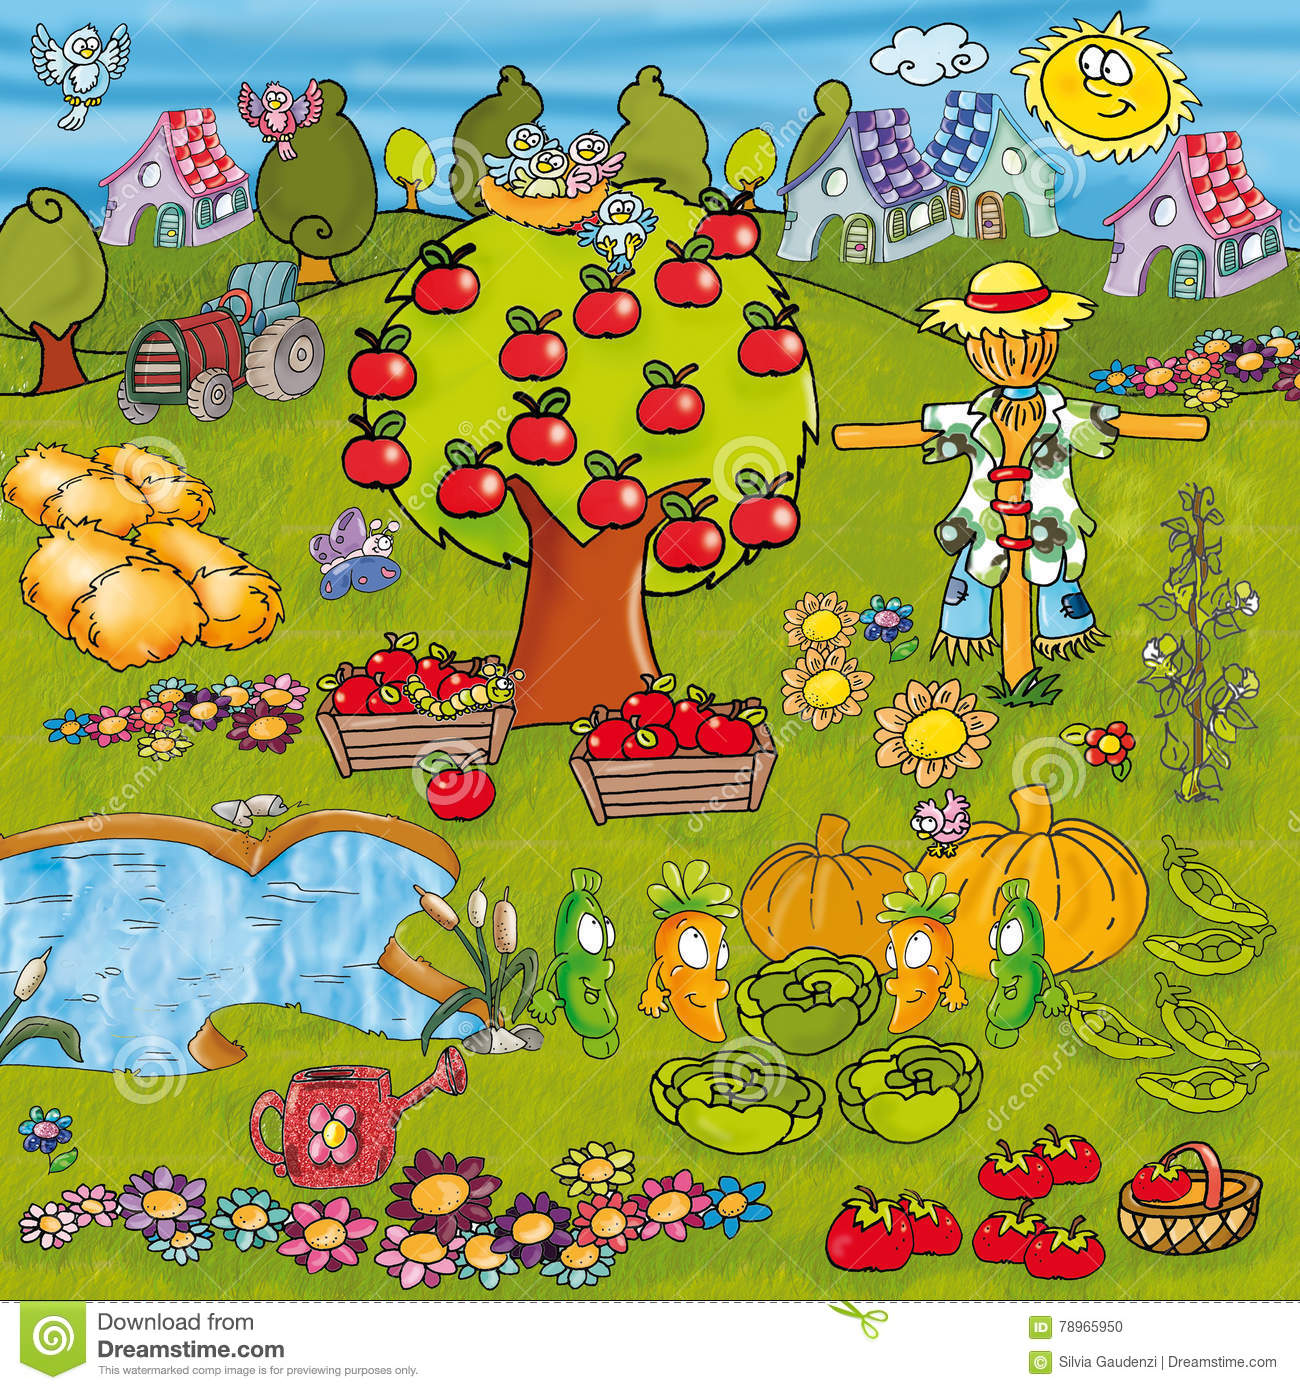 Vegetable garden cartoon - Vegetable Garden With Vegetables And Flowers Trees Lakes Watering And Many Elements And Animals Funny Cartoon